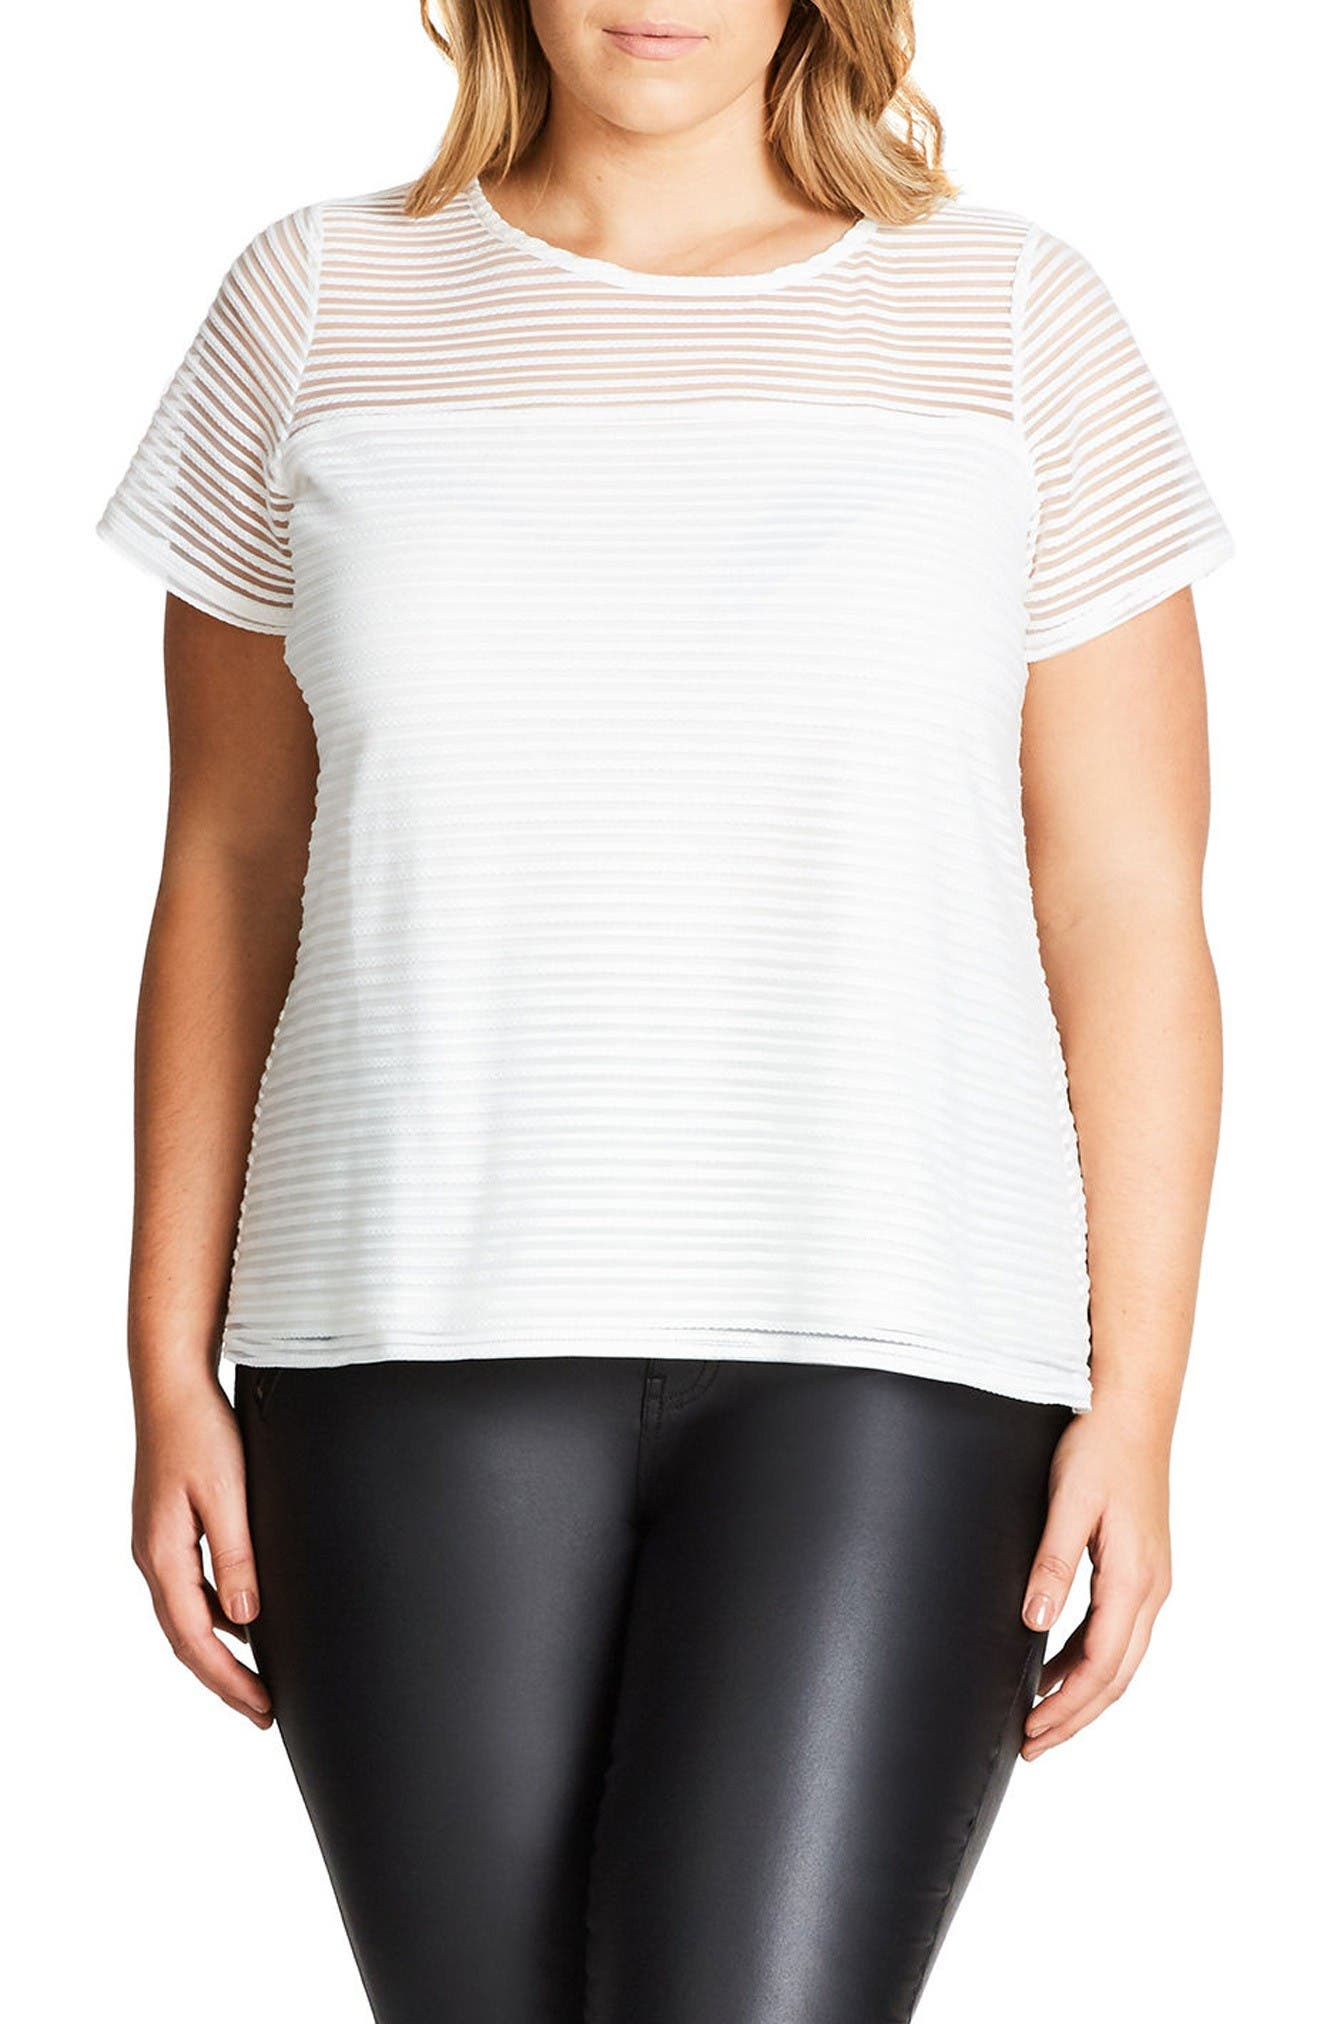 CITY CHIC Shadow Heart Top